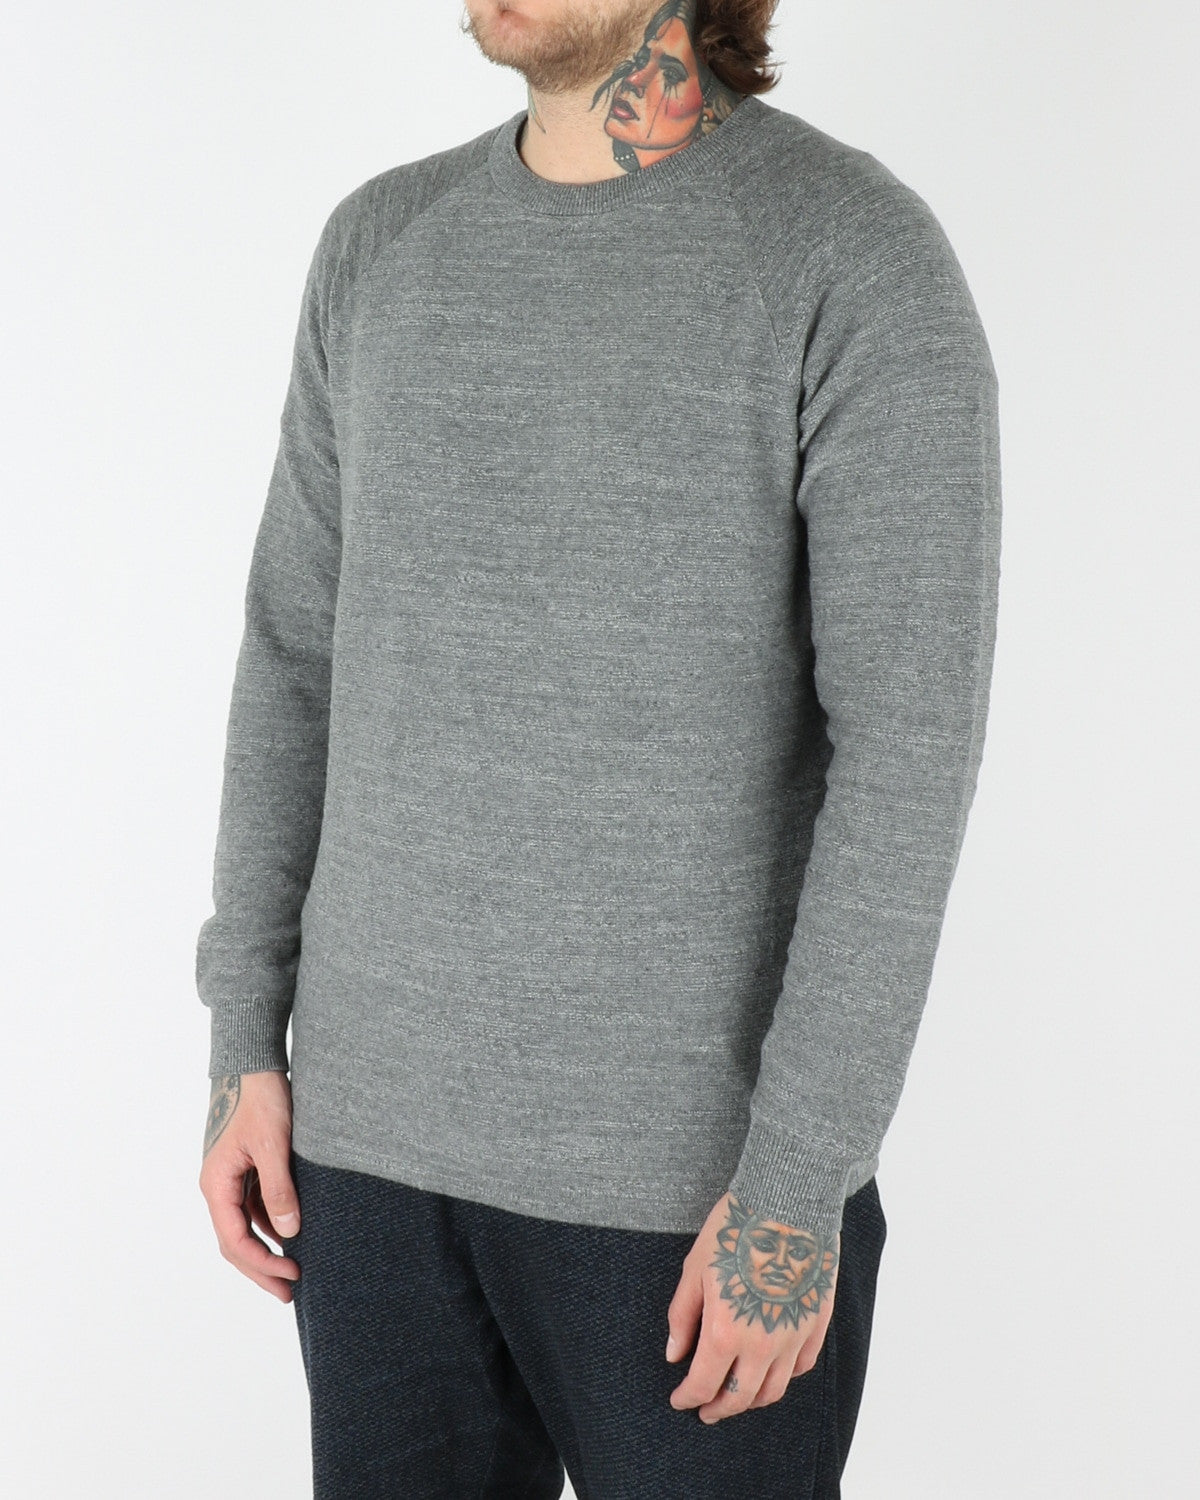 journal clothing_shad knit_storm grey_view_2_2